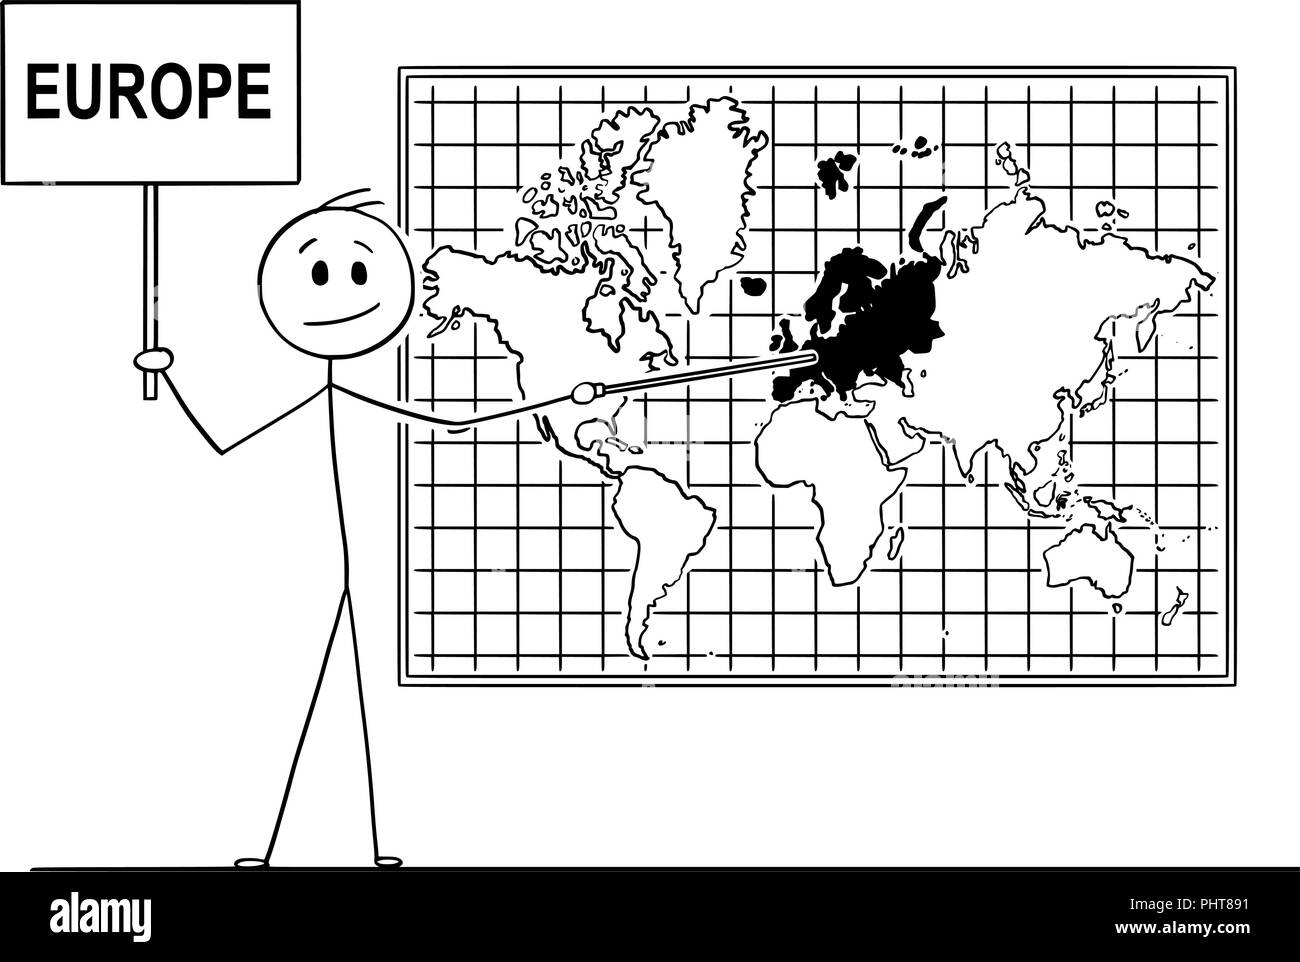 Cartoon of Man Holding a Sign and Pointing at Europe Continent on Wall World Map - Stock Image